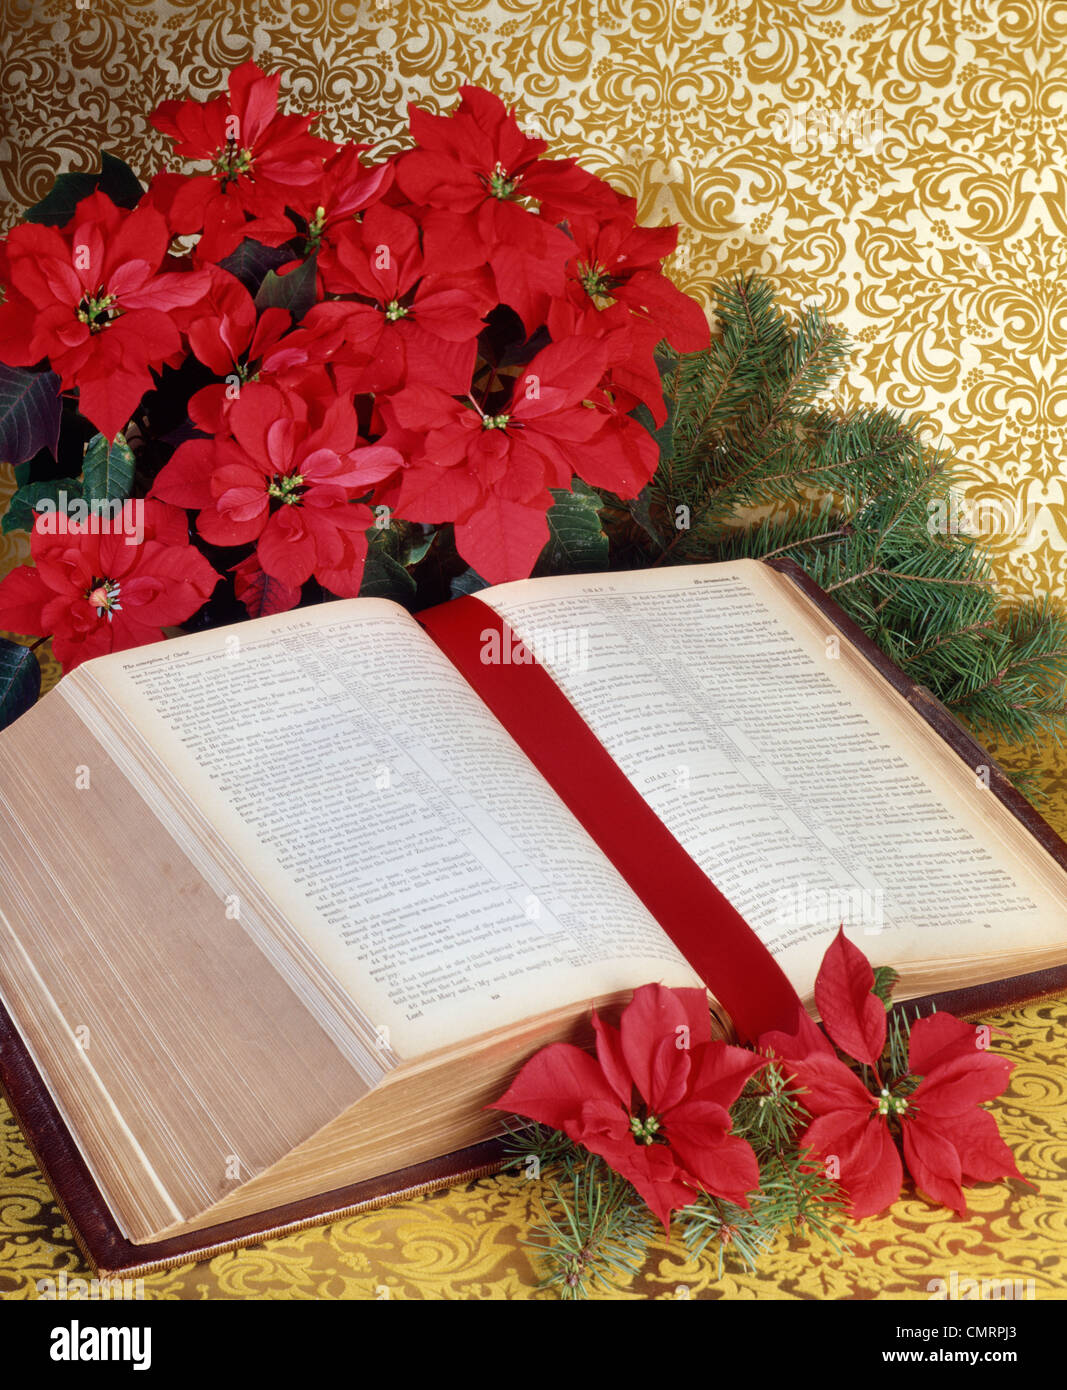 1979 1970 RETRO BIBLE POINSETTIAS Photo Stock